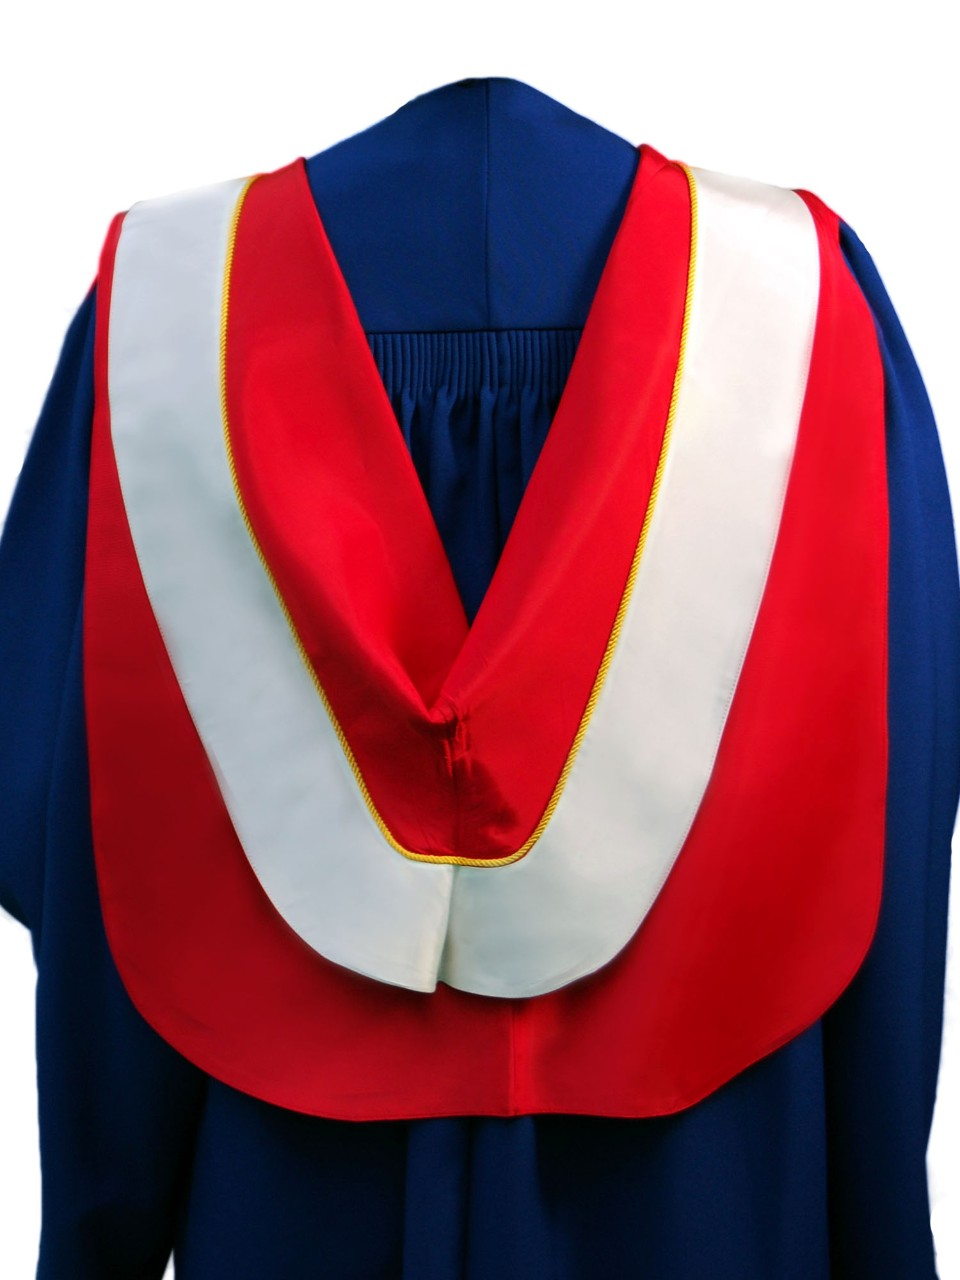 The Master of Science in the Faculty of Education hood is red with wide white border and gold cording